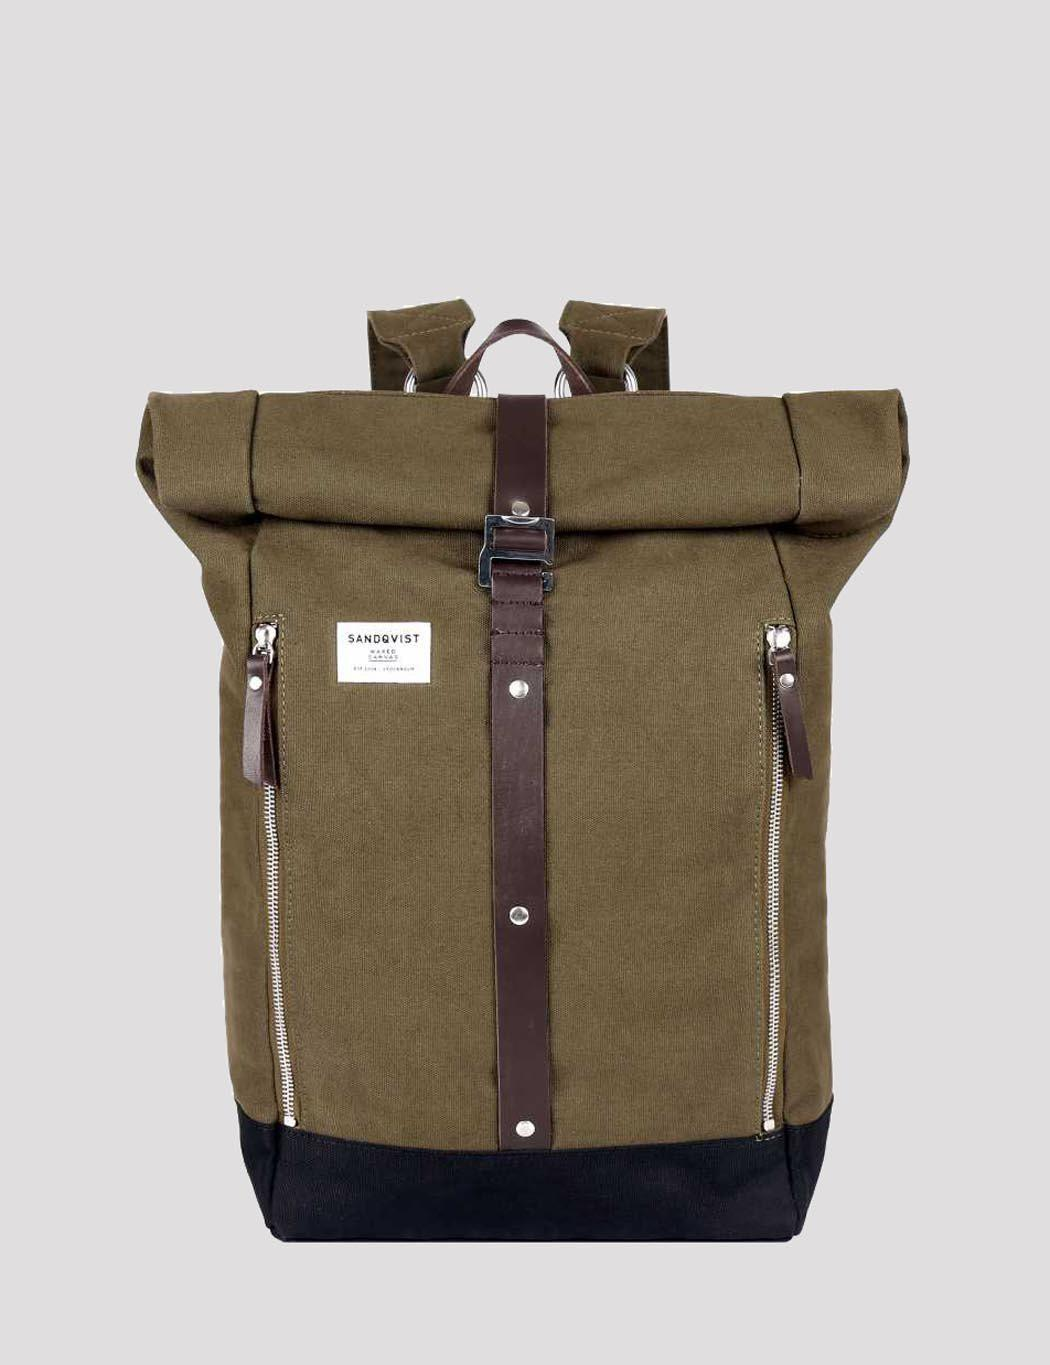 Sandqvist Cotton Rolf Rolltop Backpack Canvas In Green